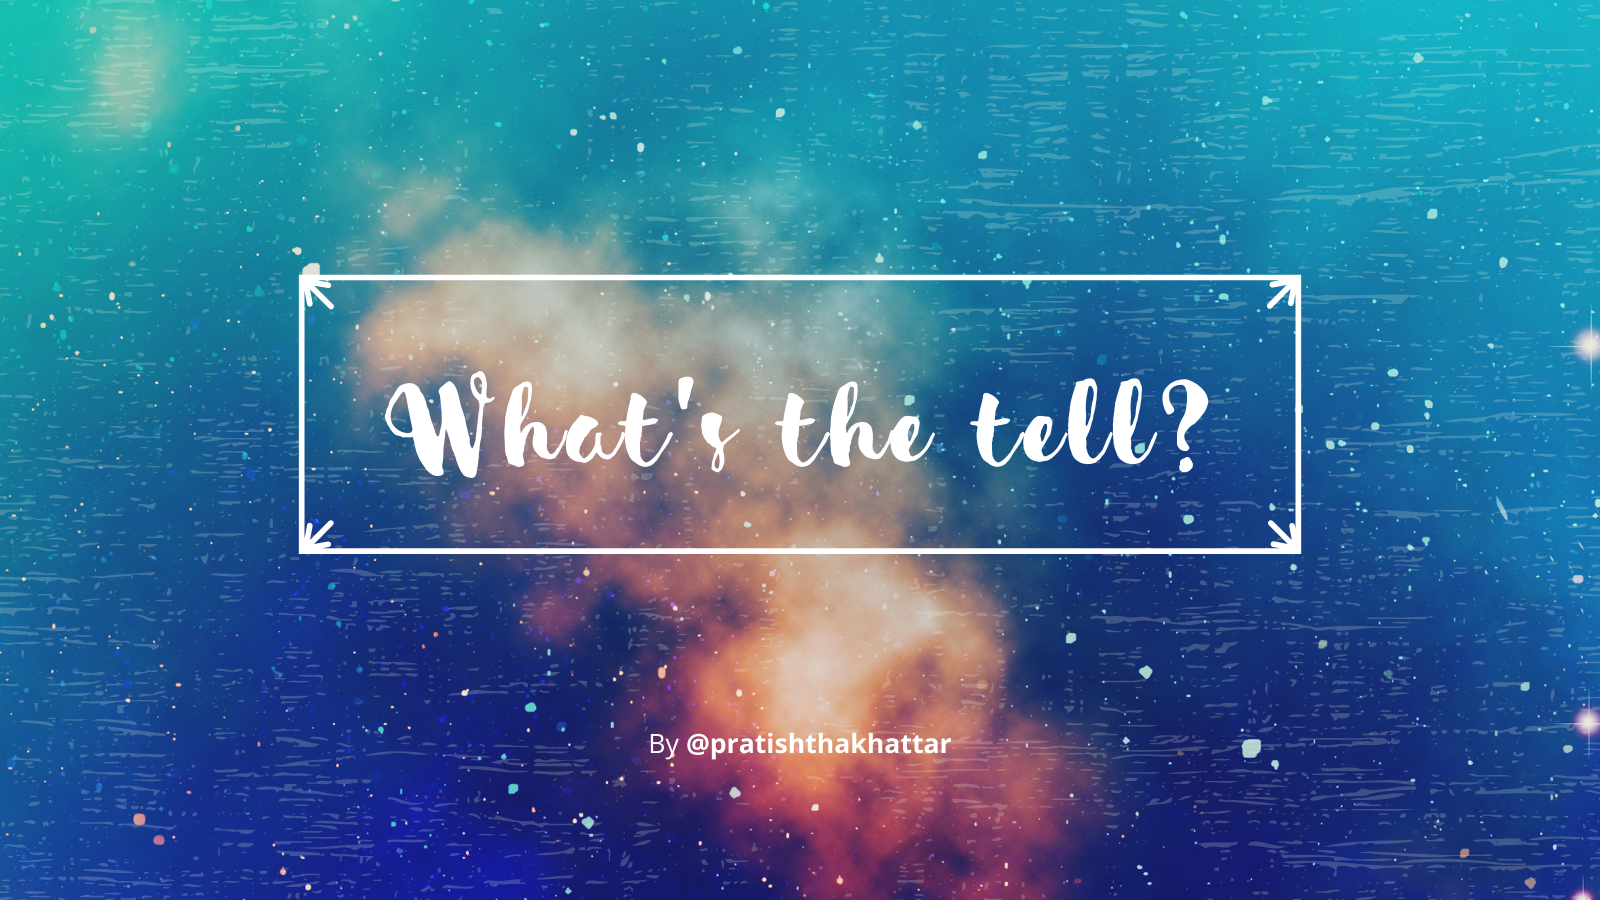 What's the tell? - Writing Challenge